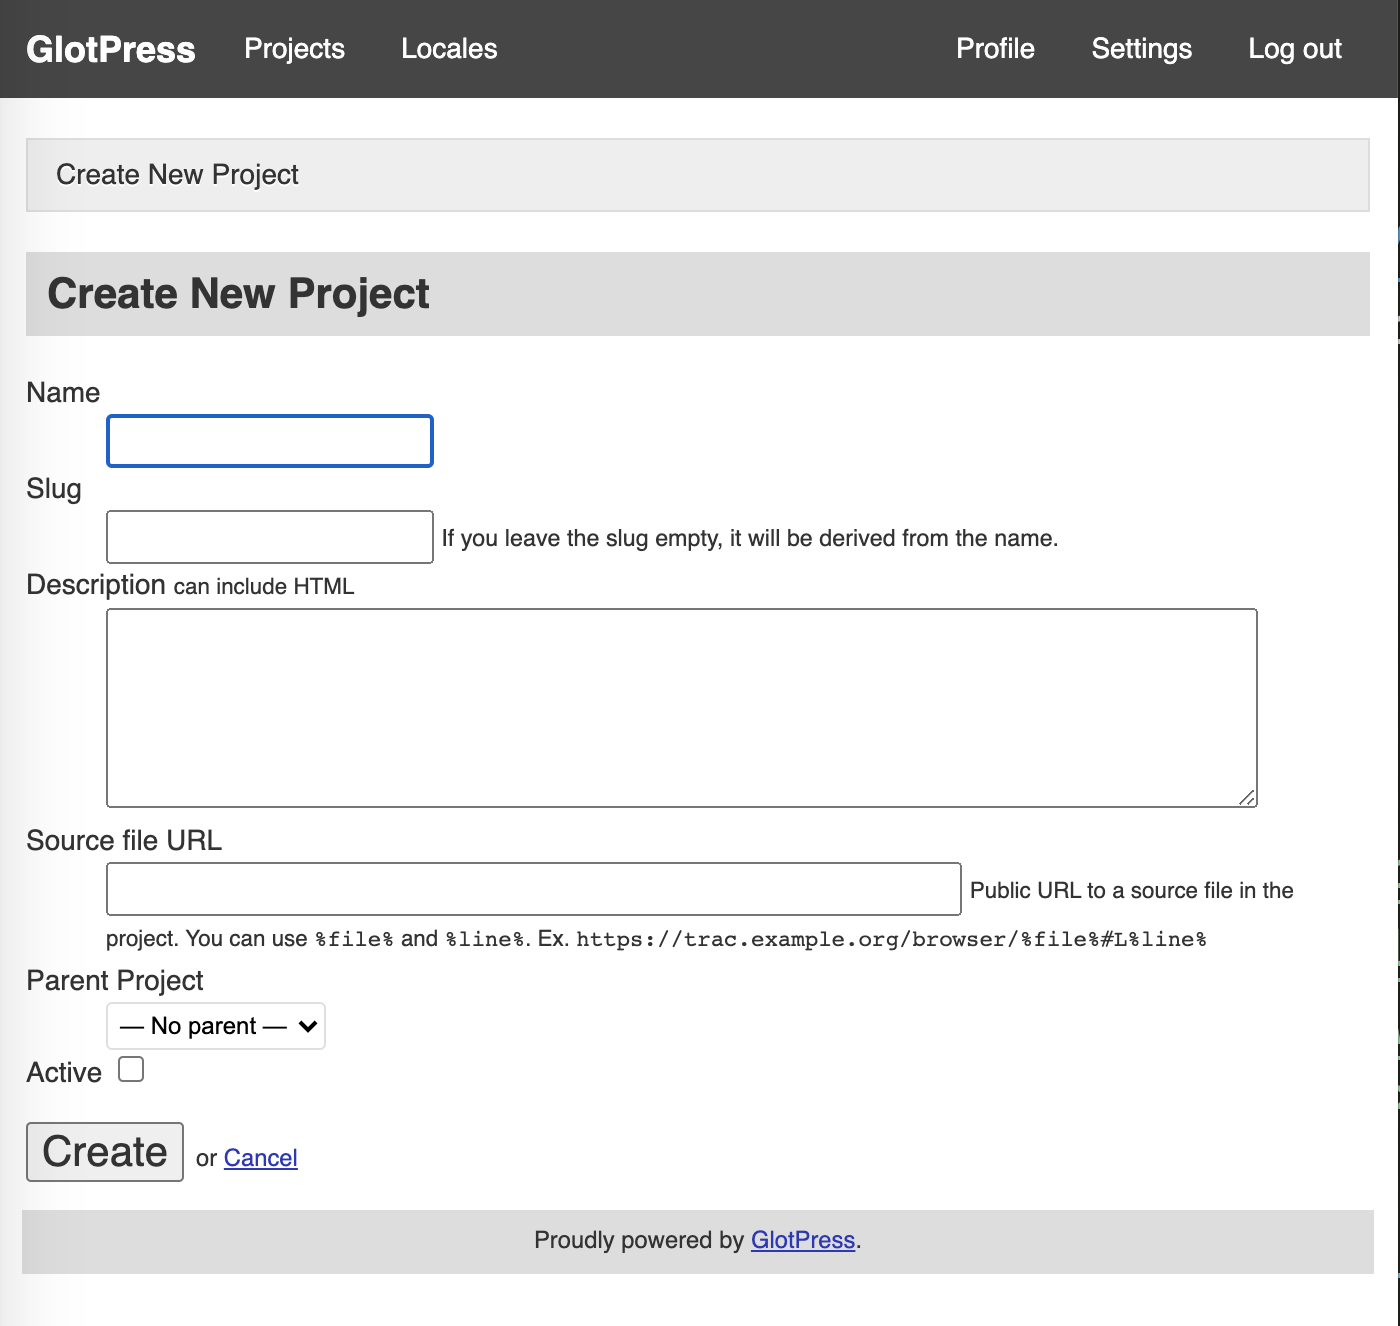 Glotpress project creation screen